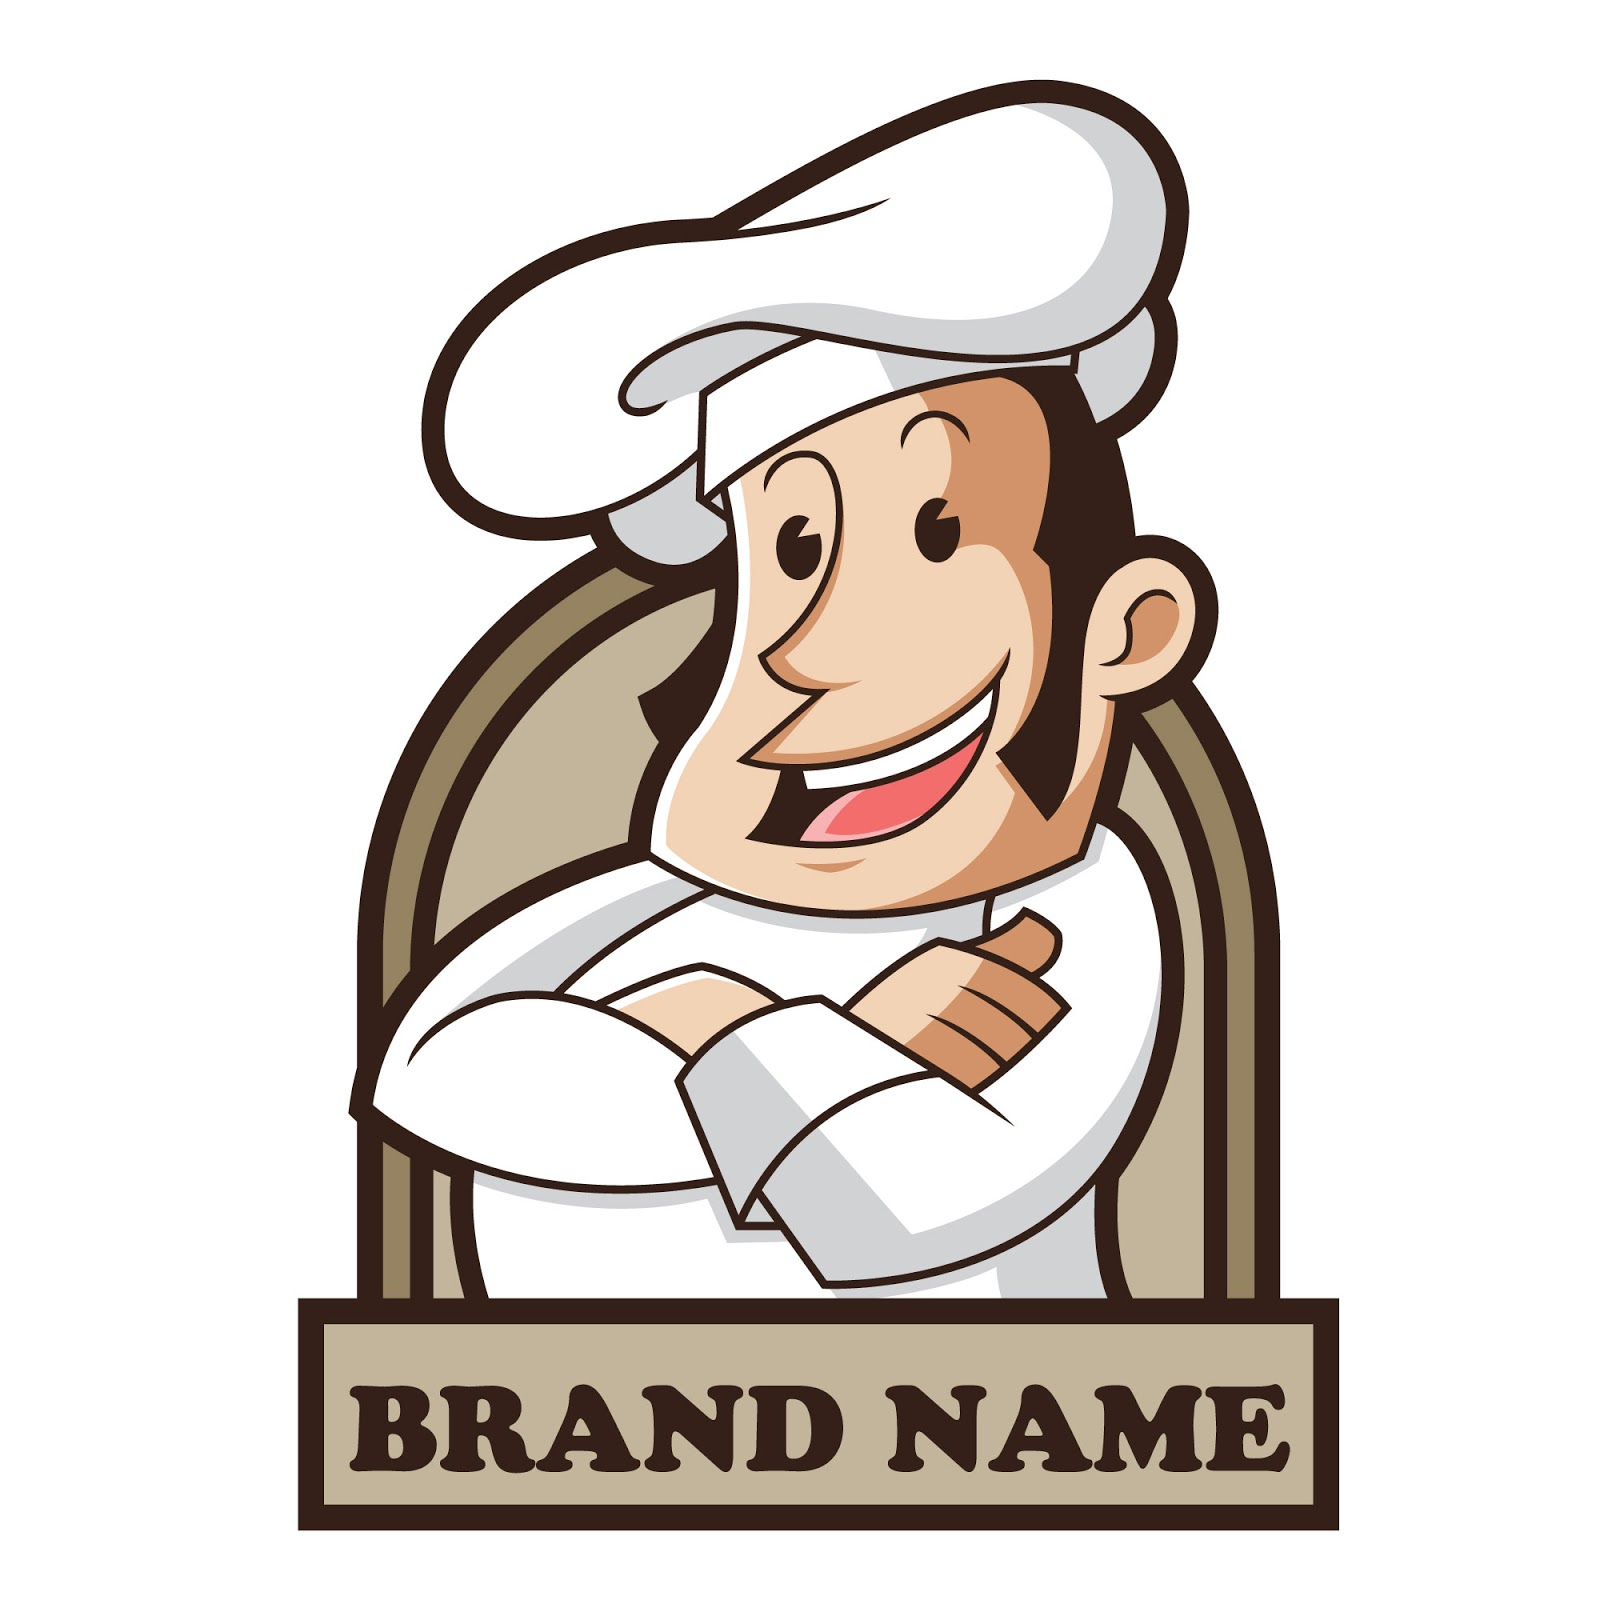 Chef Mascot Free Download Vector CDR, AI, EPS and PNG Formats